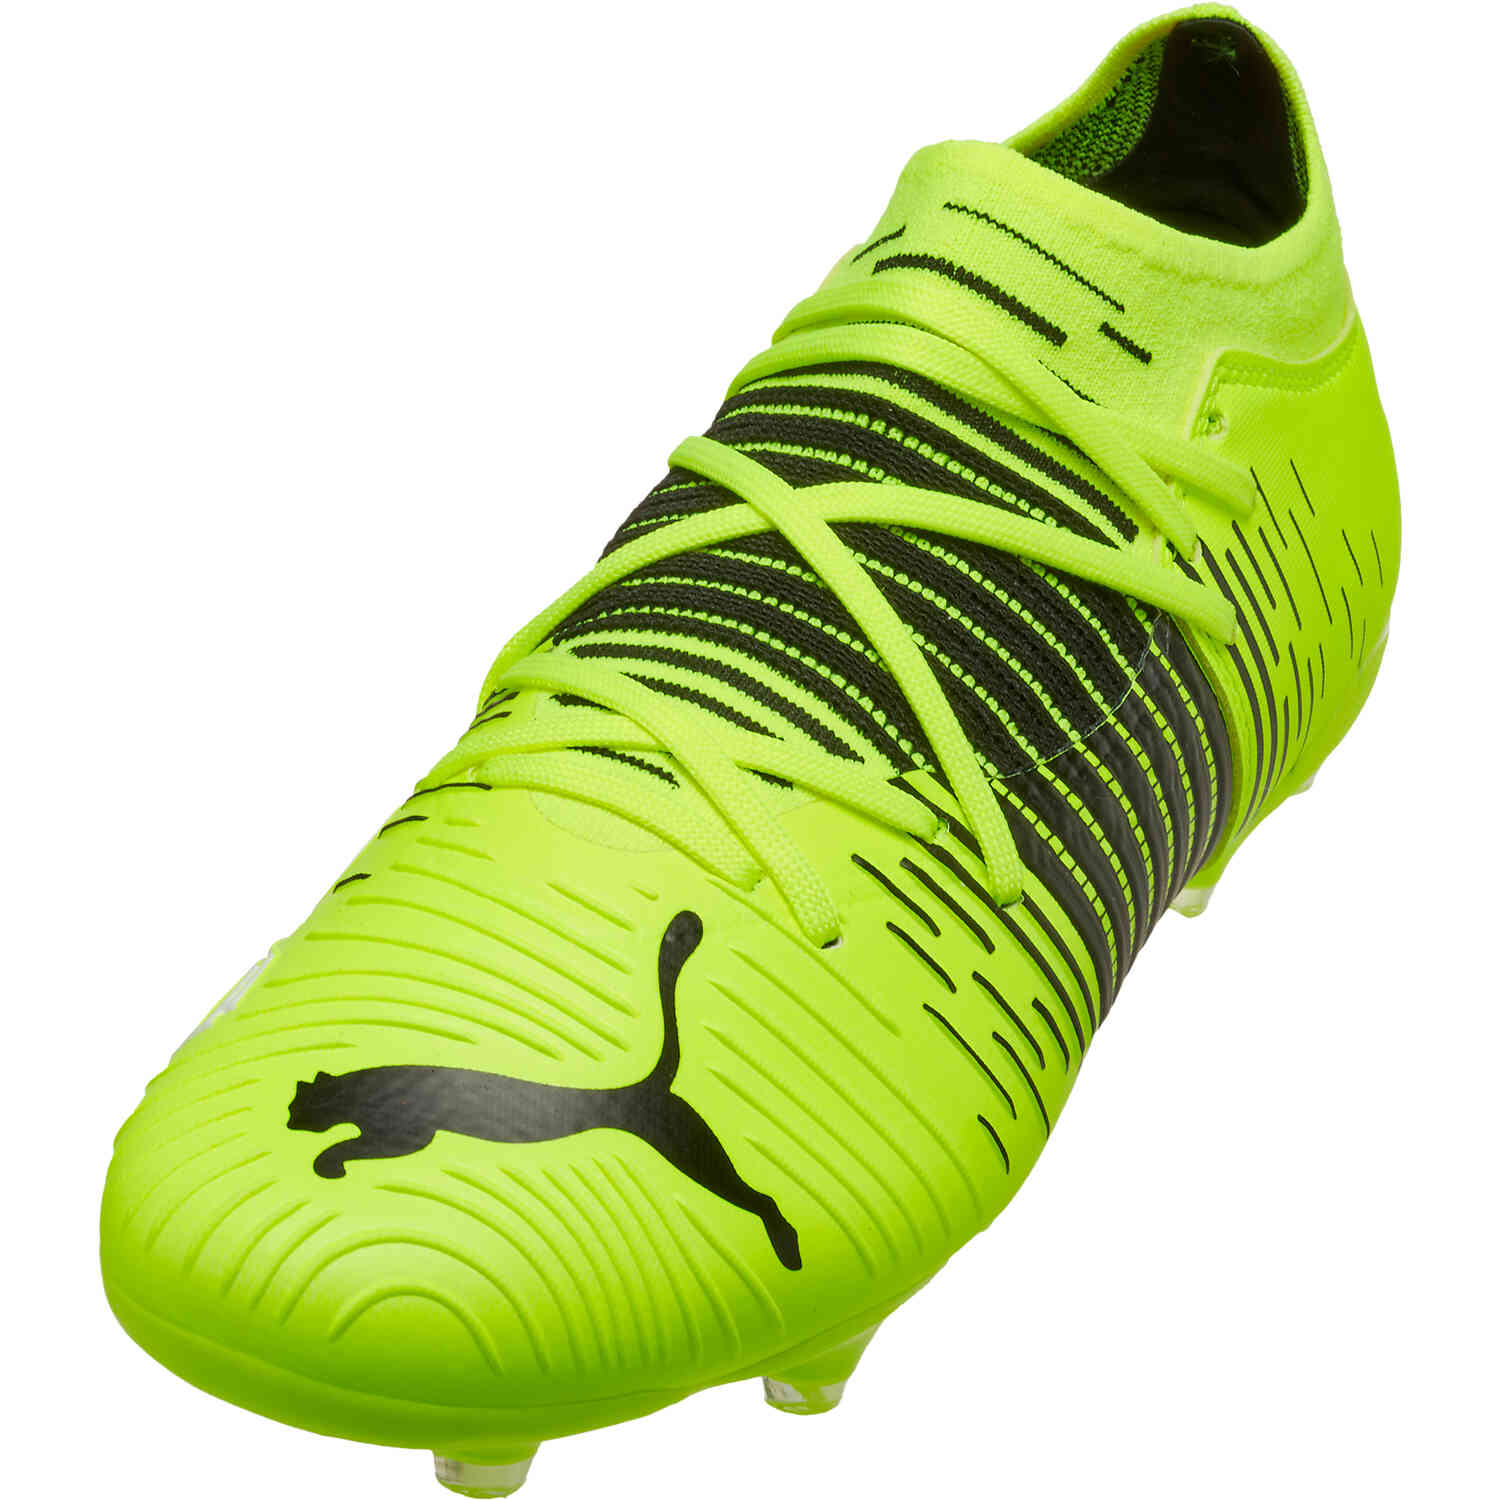 Puma Future Z 3.1 FG – Game On Pack